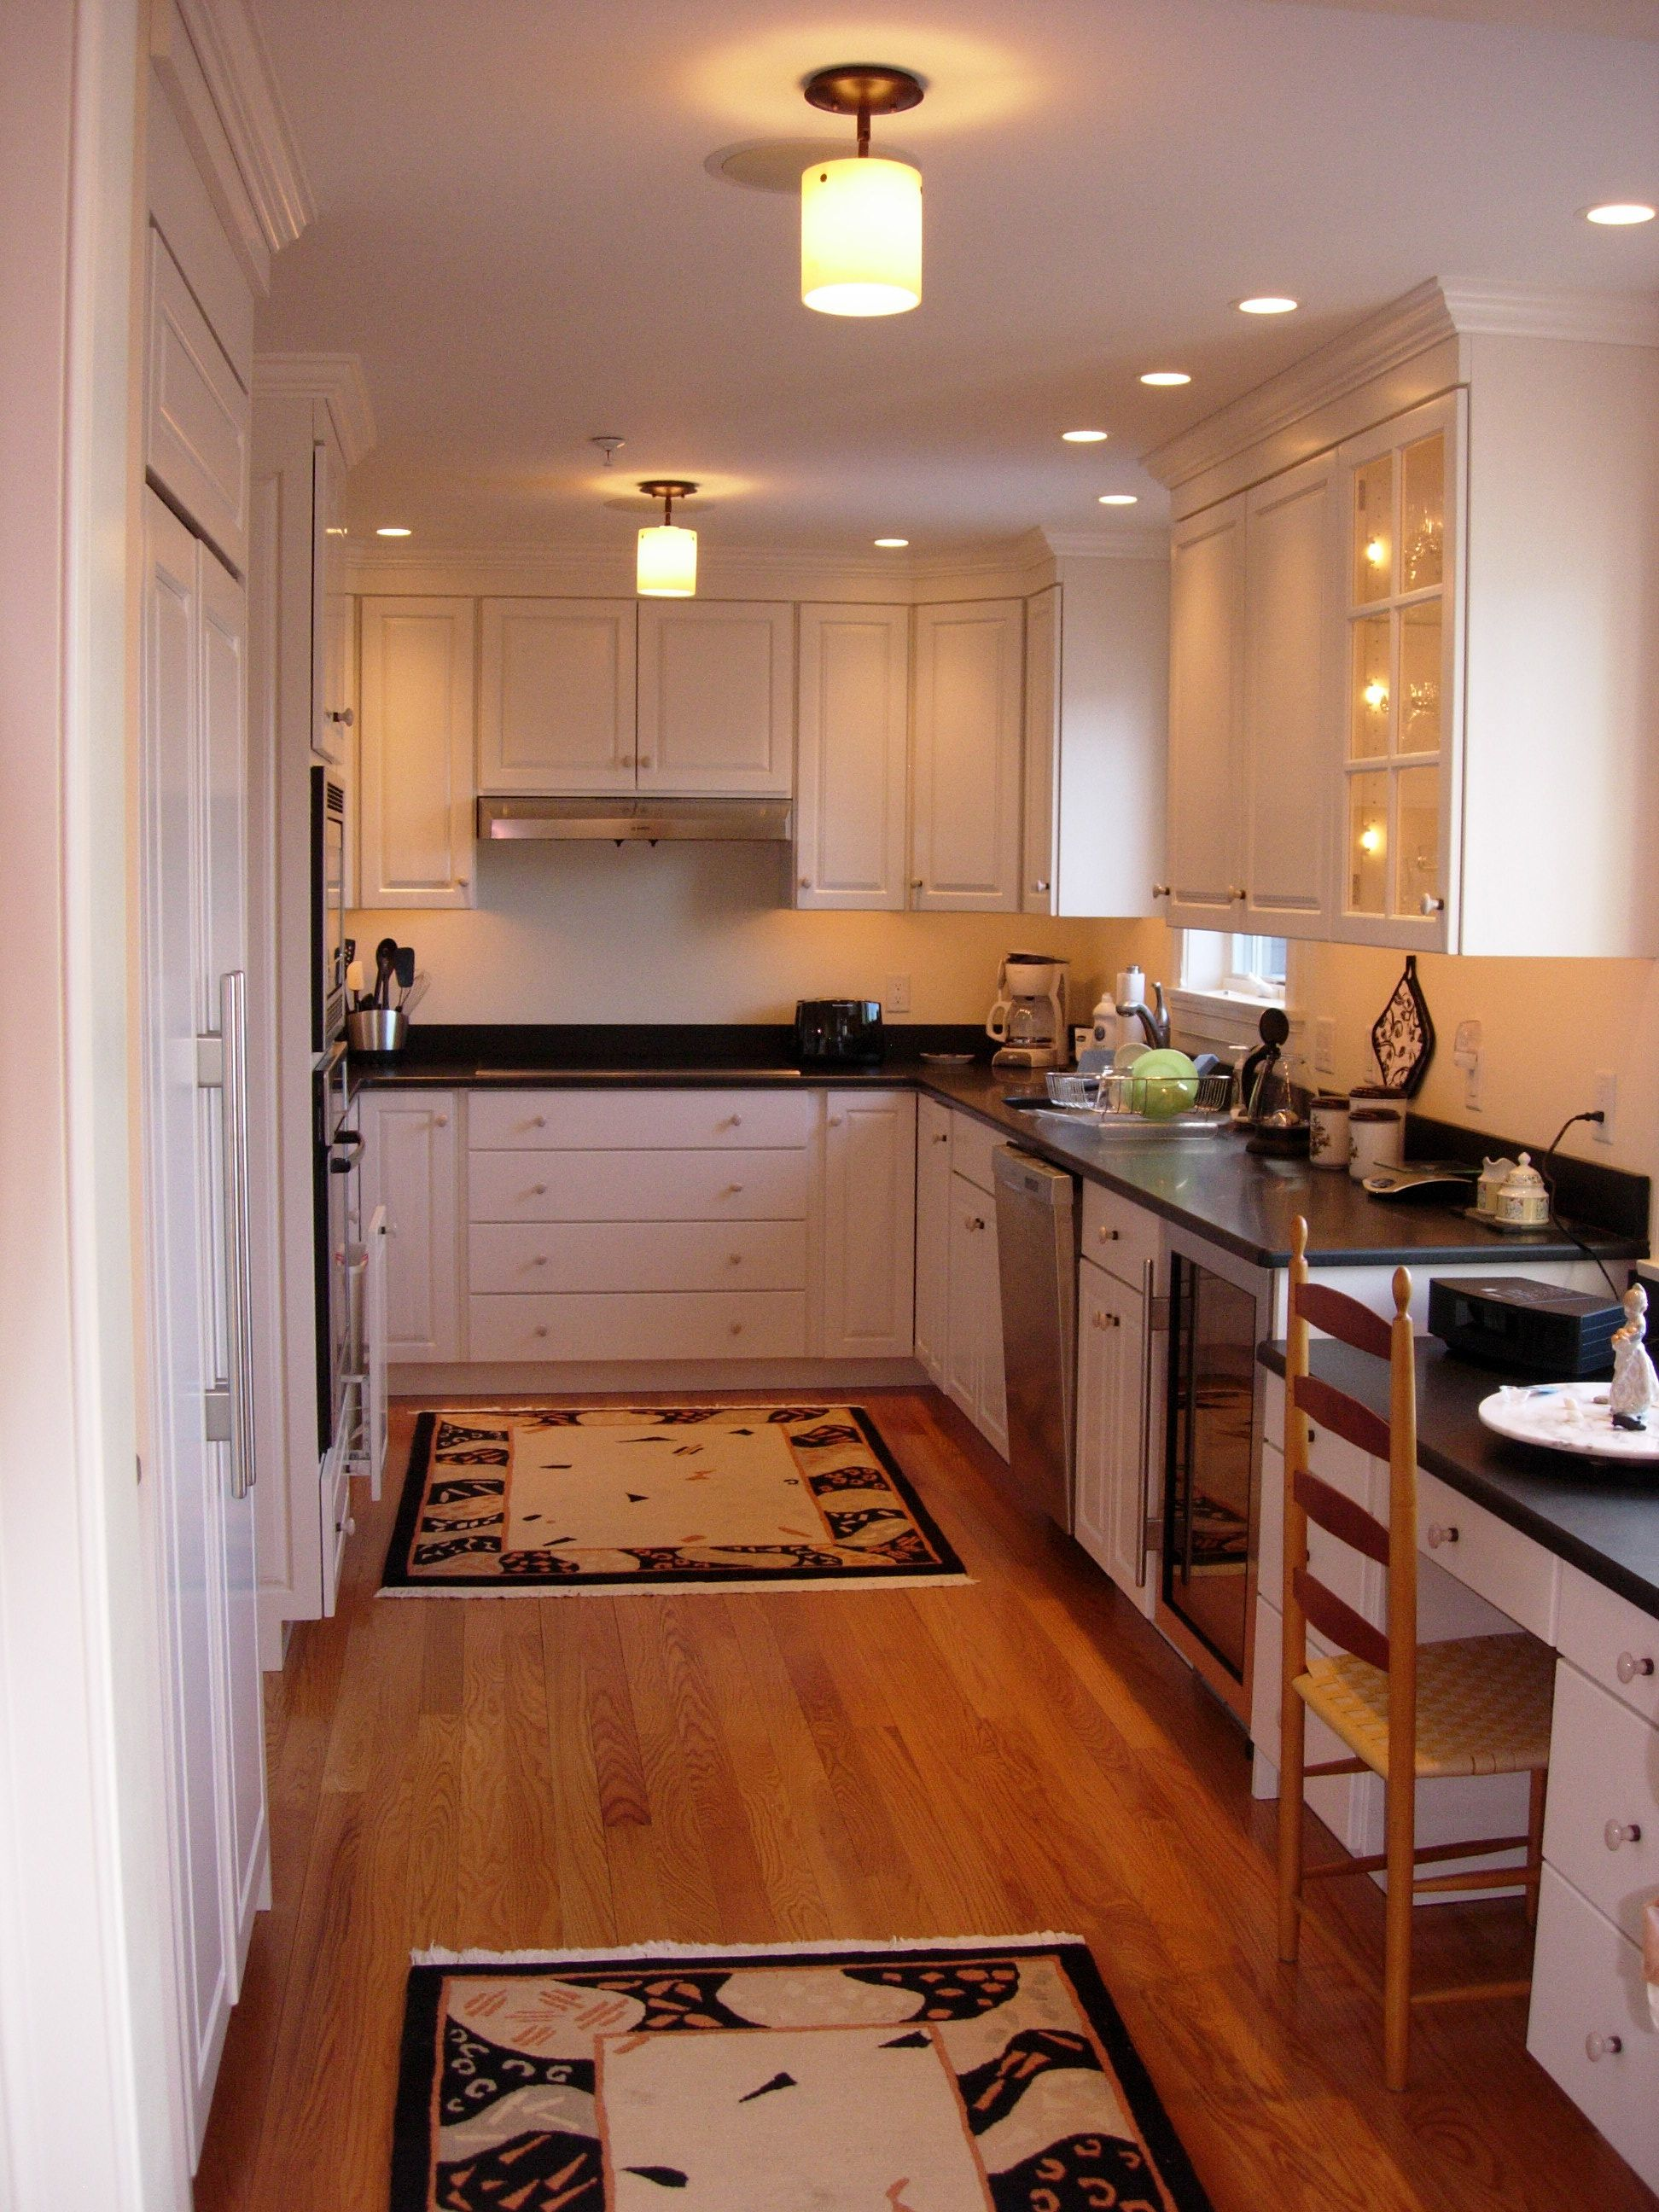 Recessed Lighting In A Small Kitchen Kitchen Design Small